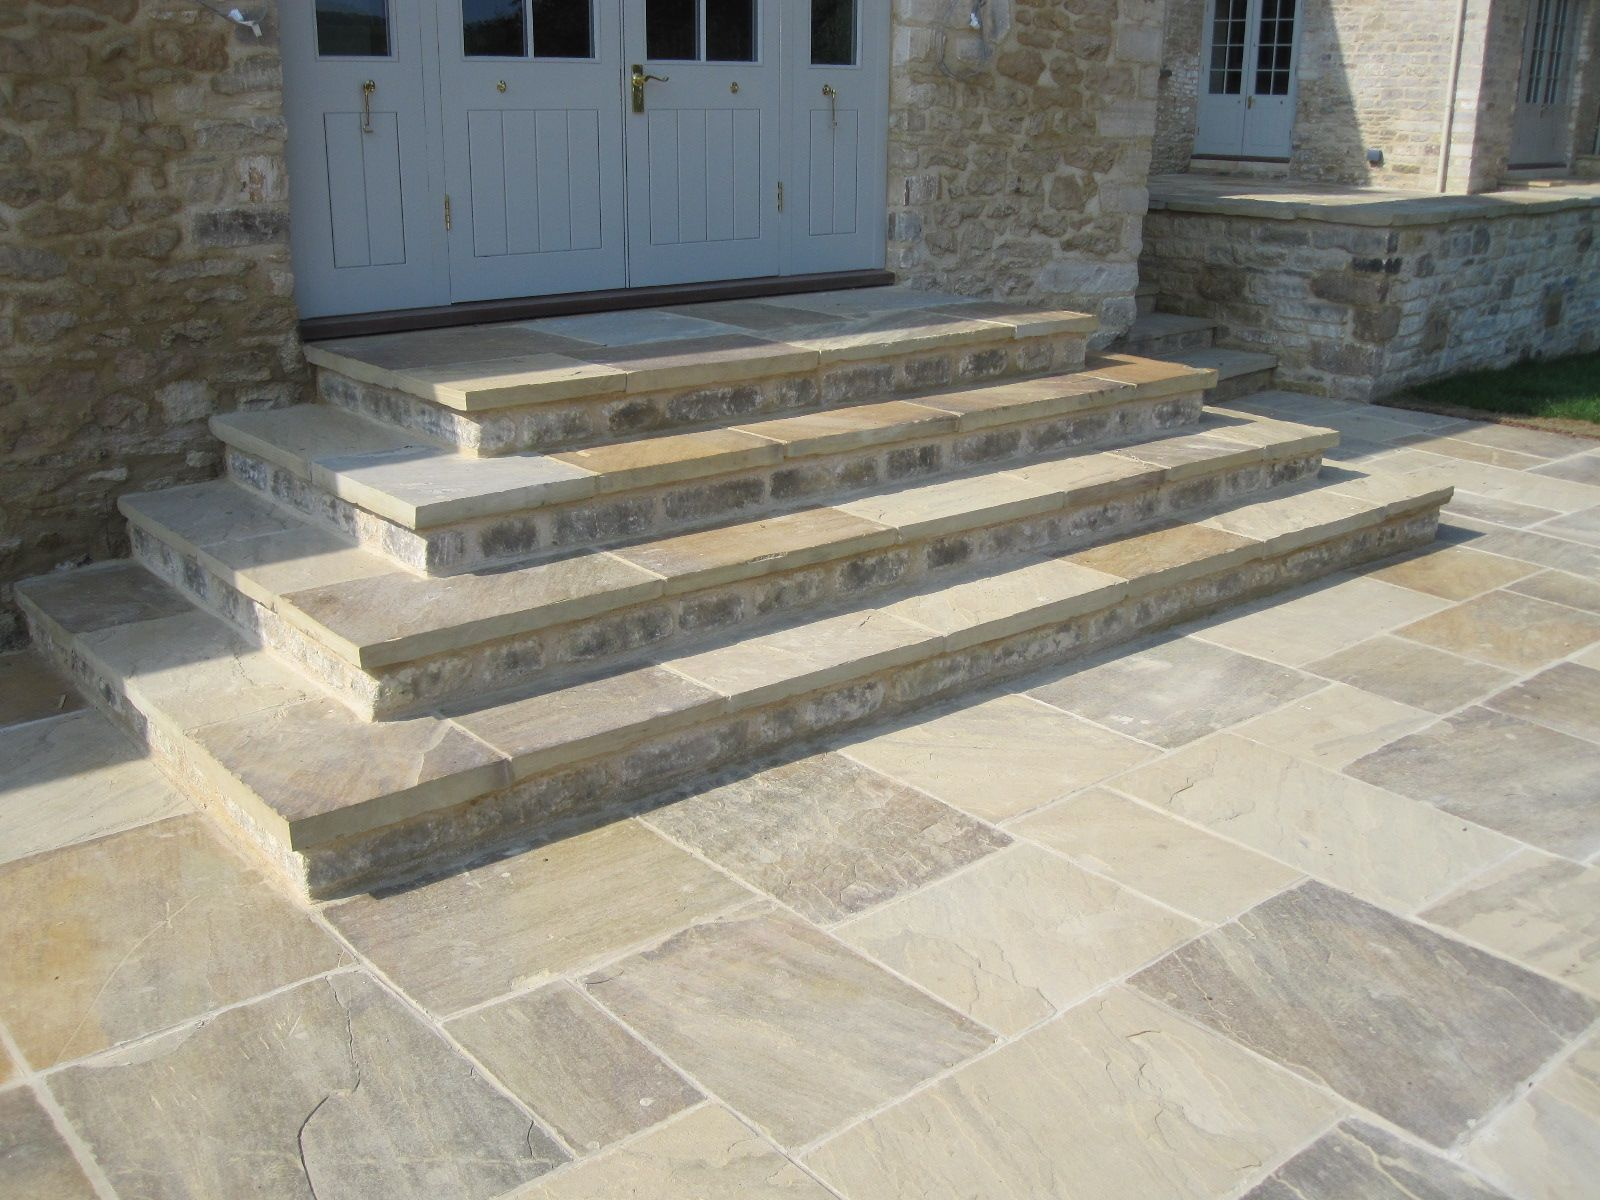 New riven yorkstone paving flags by natural stone for Garden paving ideas designs